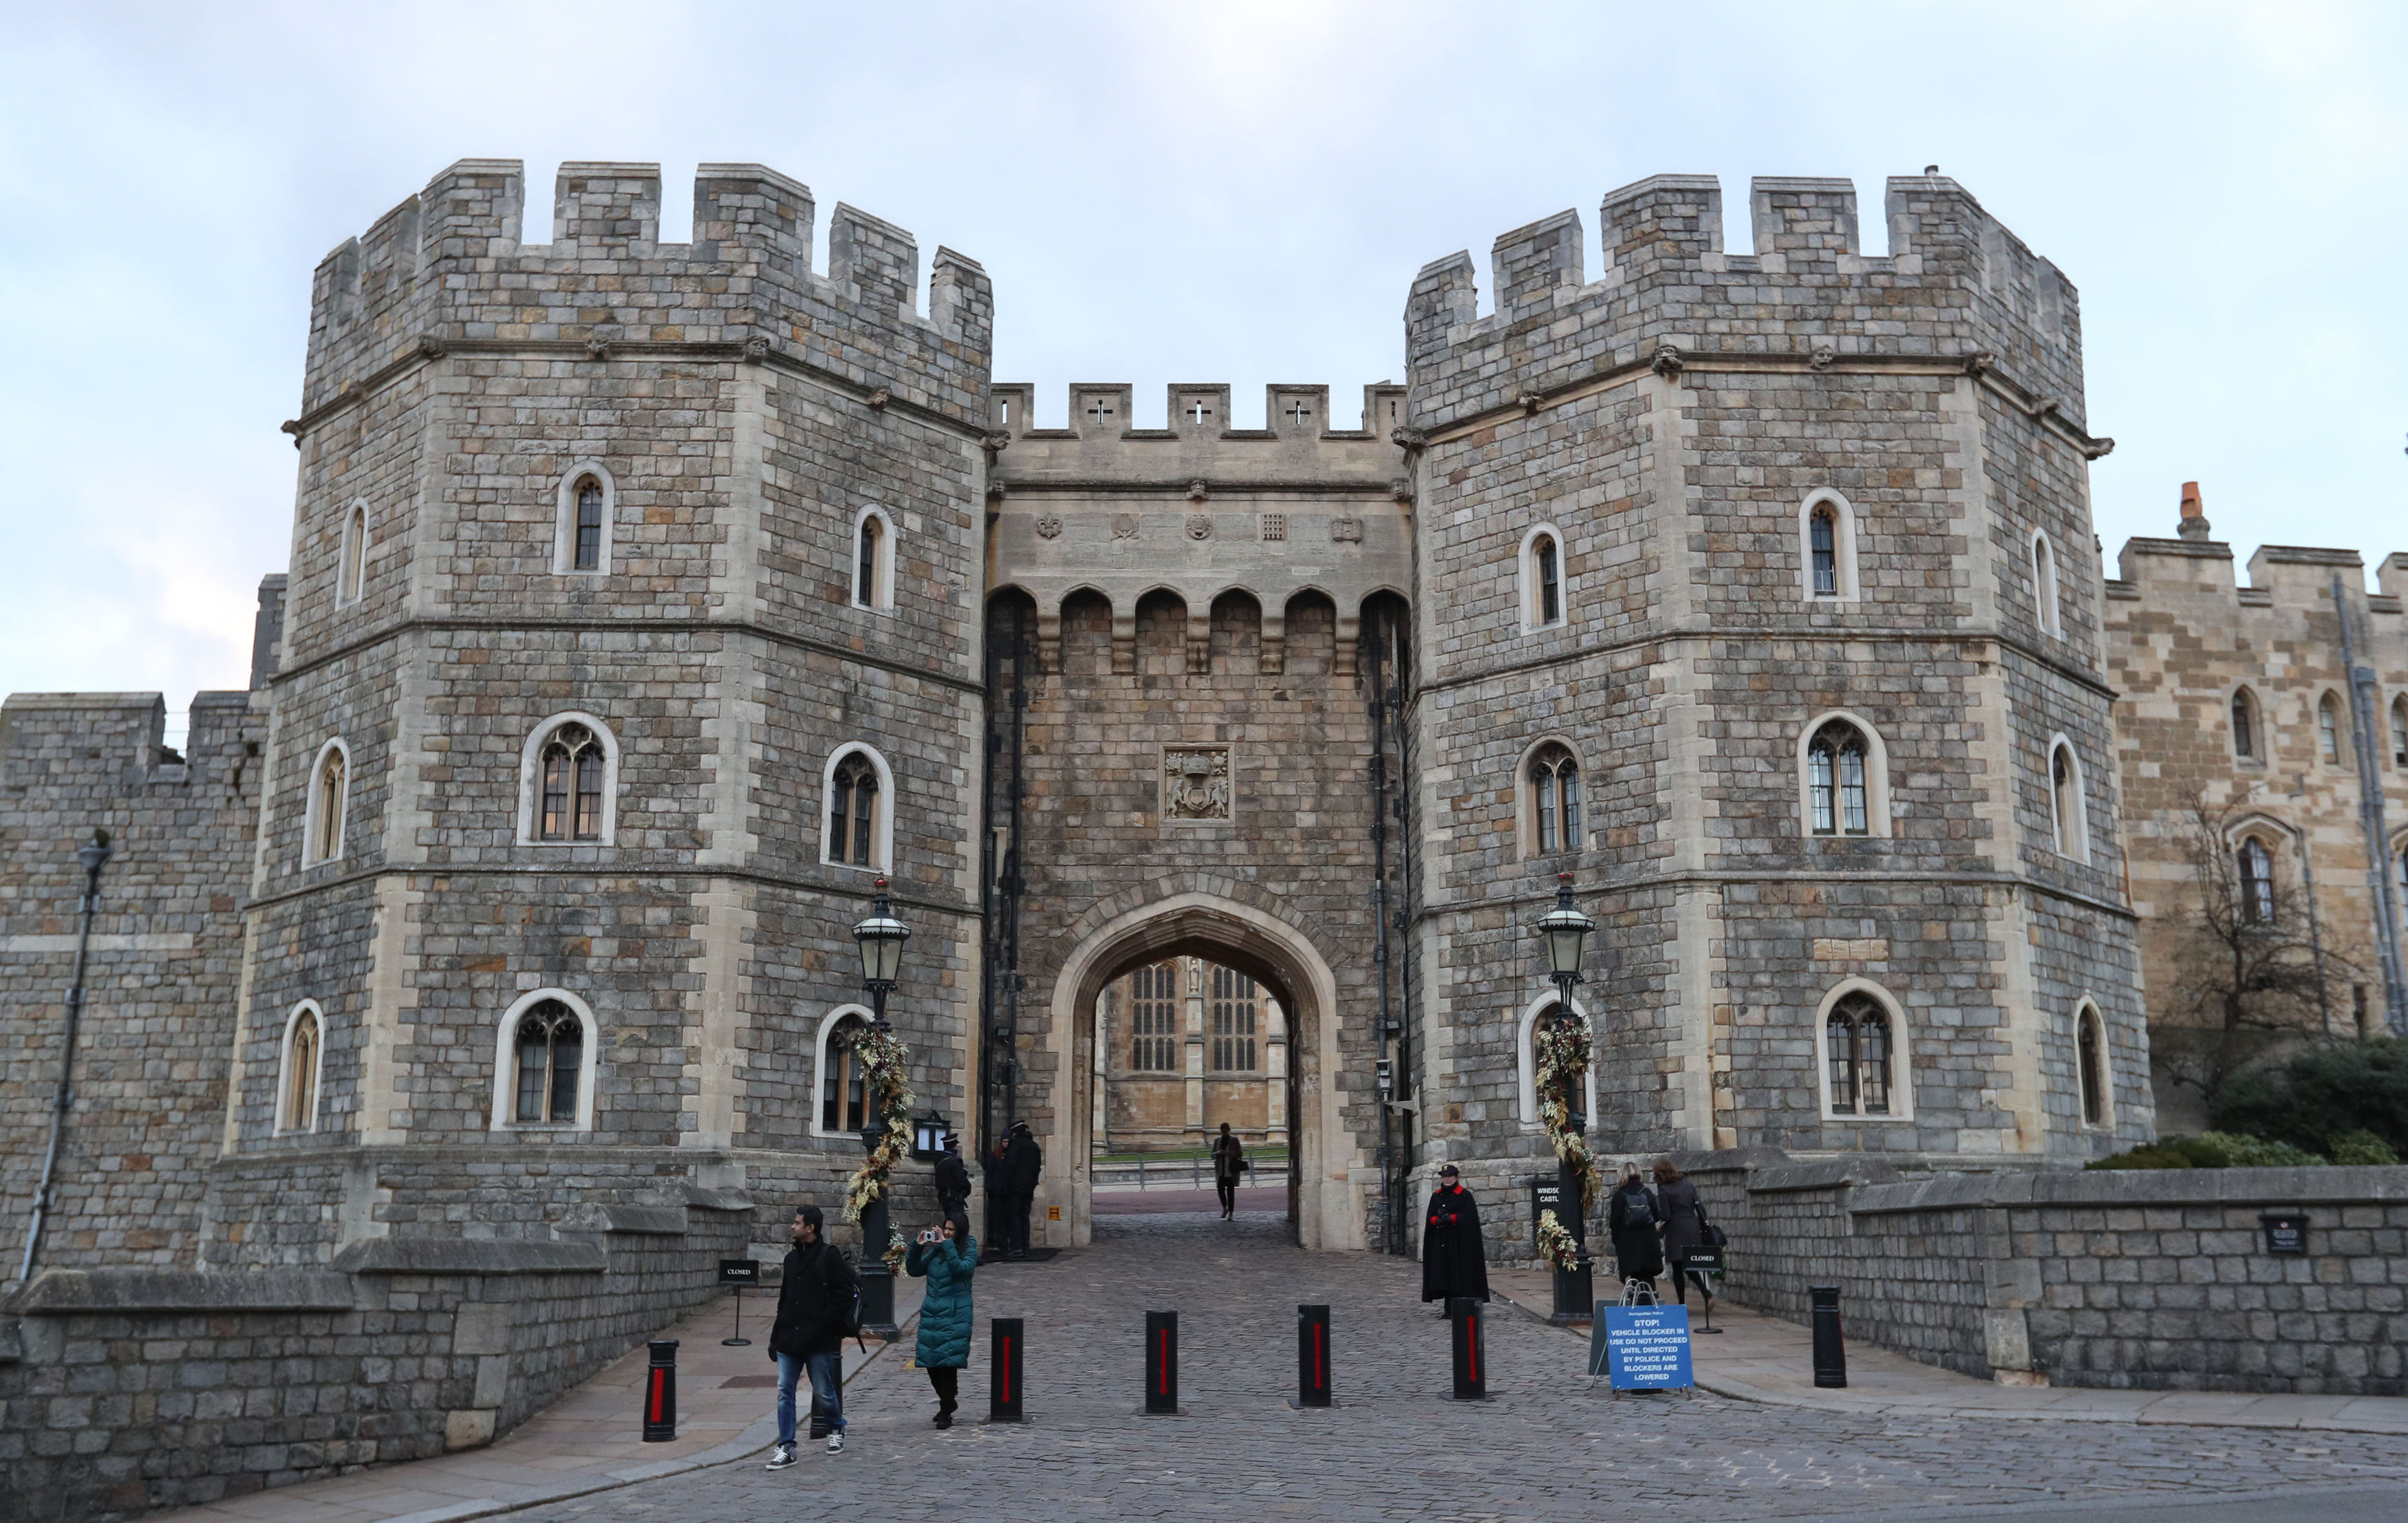 St. George's Chapel at Windsor Castle in Berkshire has been chosen as the venue for the wedding of Prince Harry and Meghan Markle.